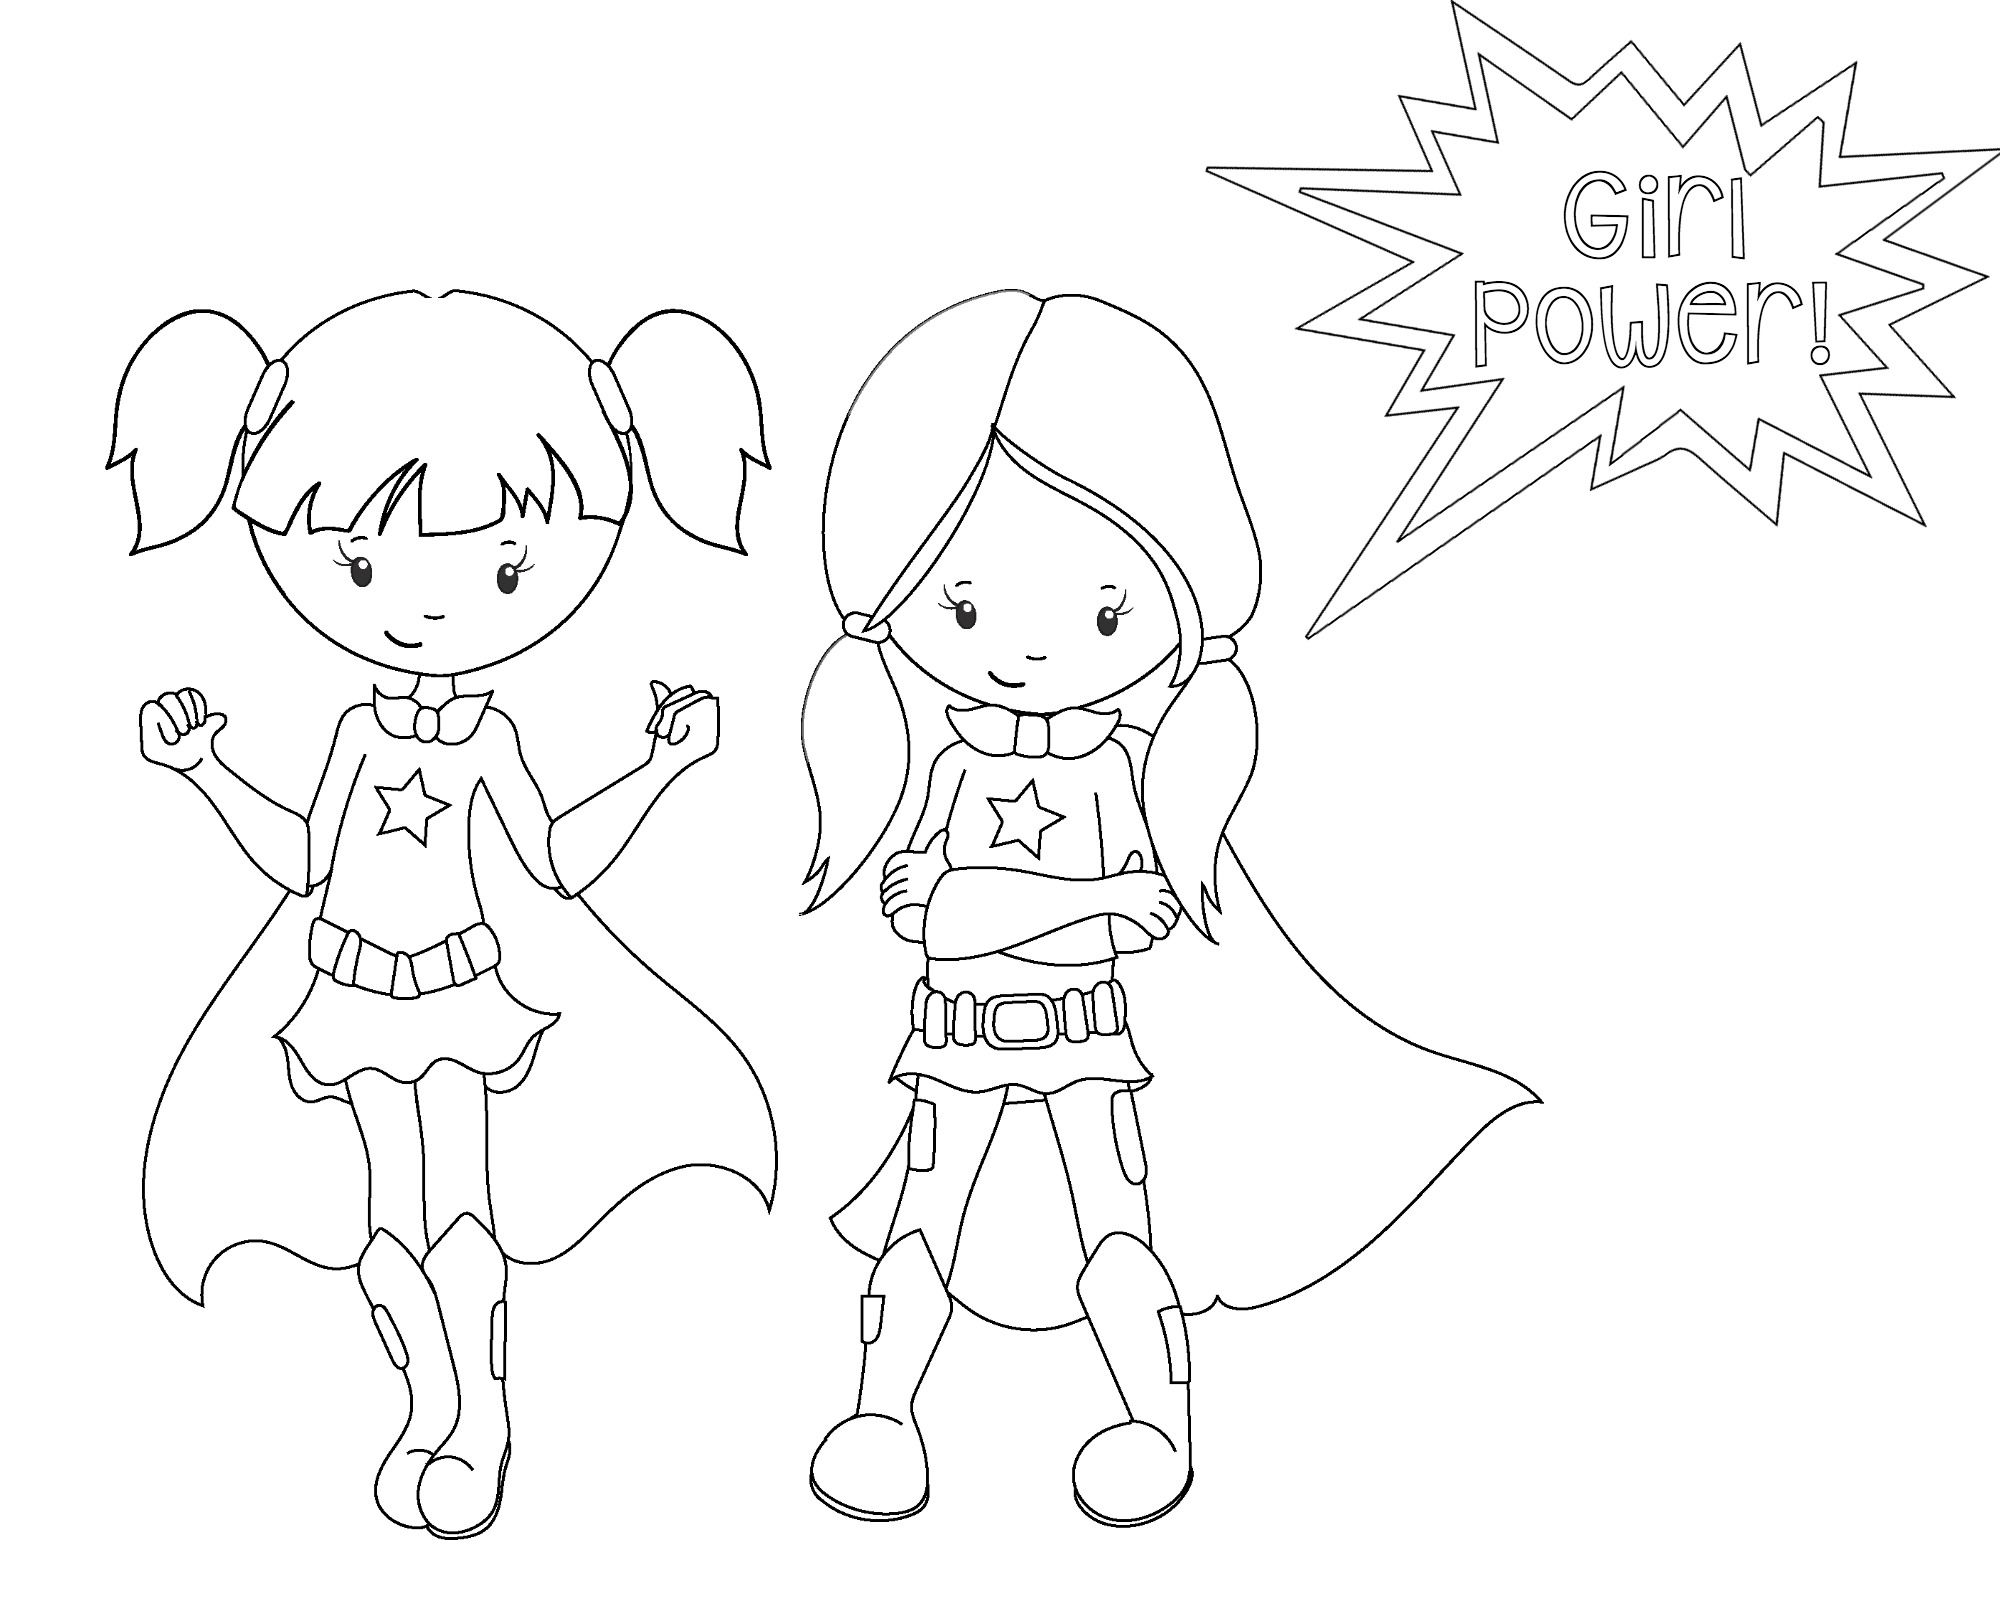 superhero coloring pages - Superhero Coloring Pages